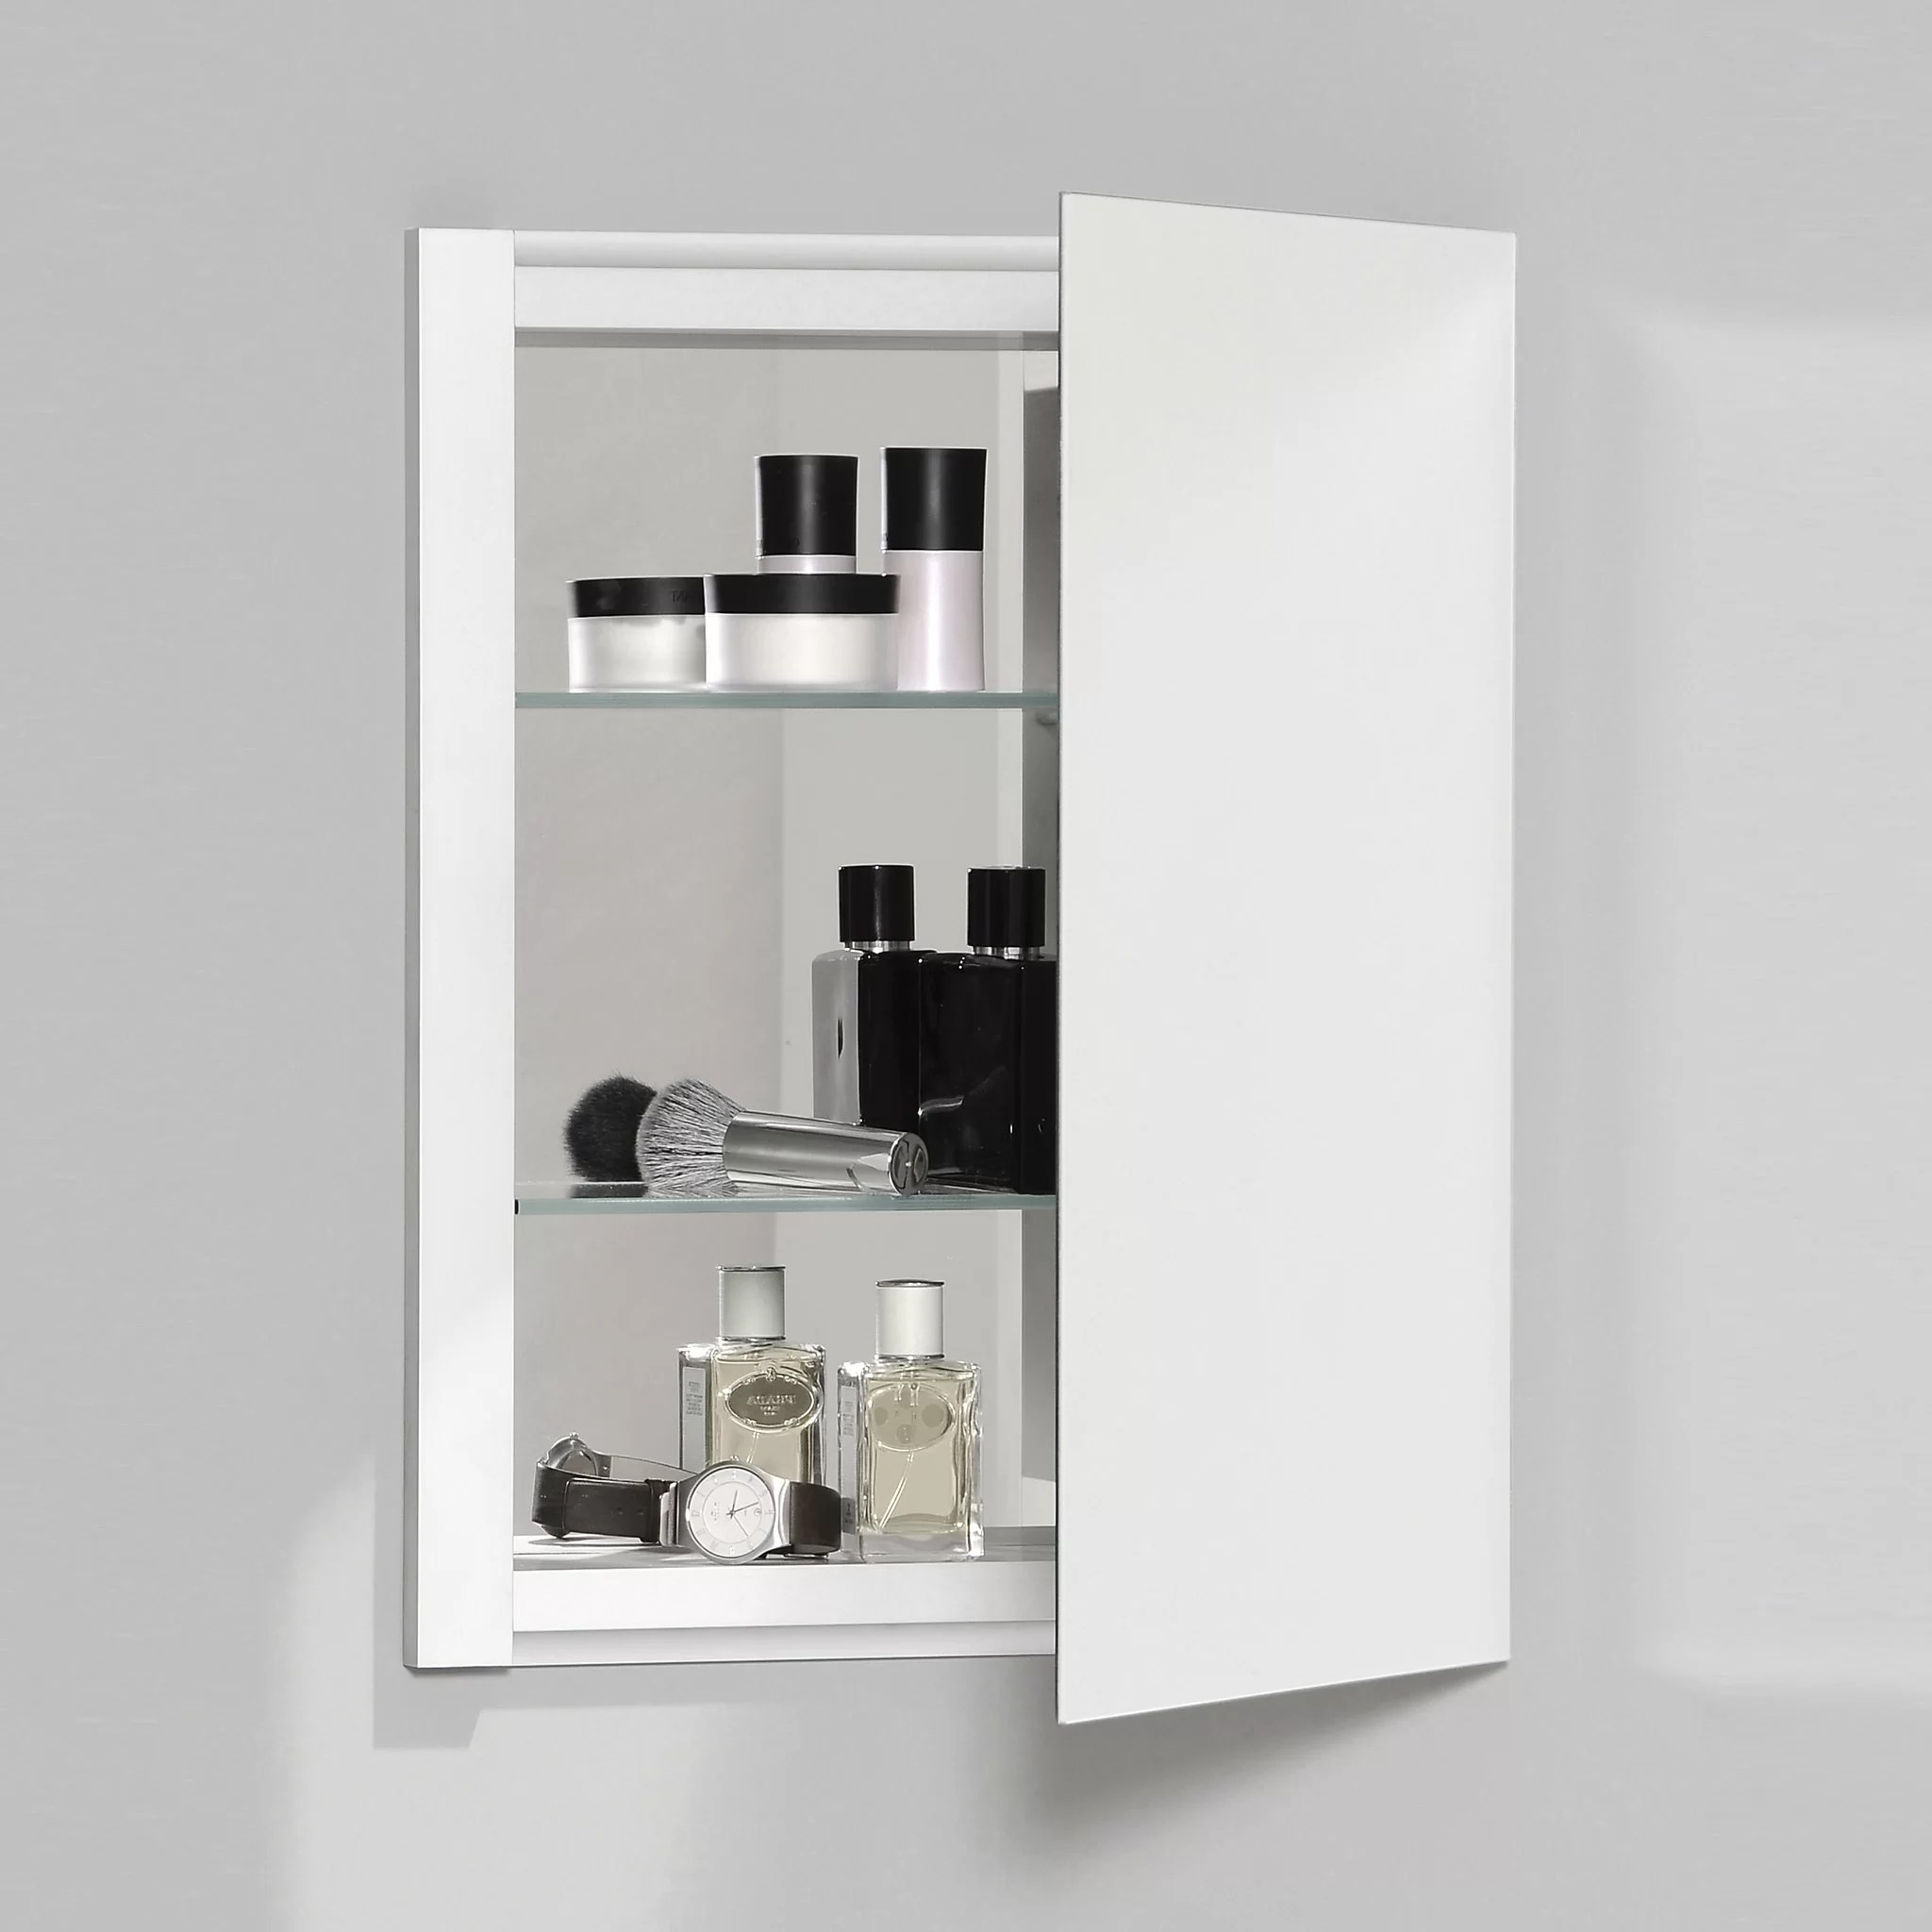 Frameless Mirror Mounting Kit R3 Series Recessed Or Surface Mount Frameless Medicine Cabinet With 3 Adjustable Shelves